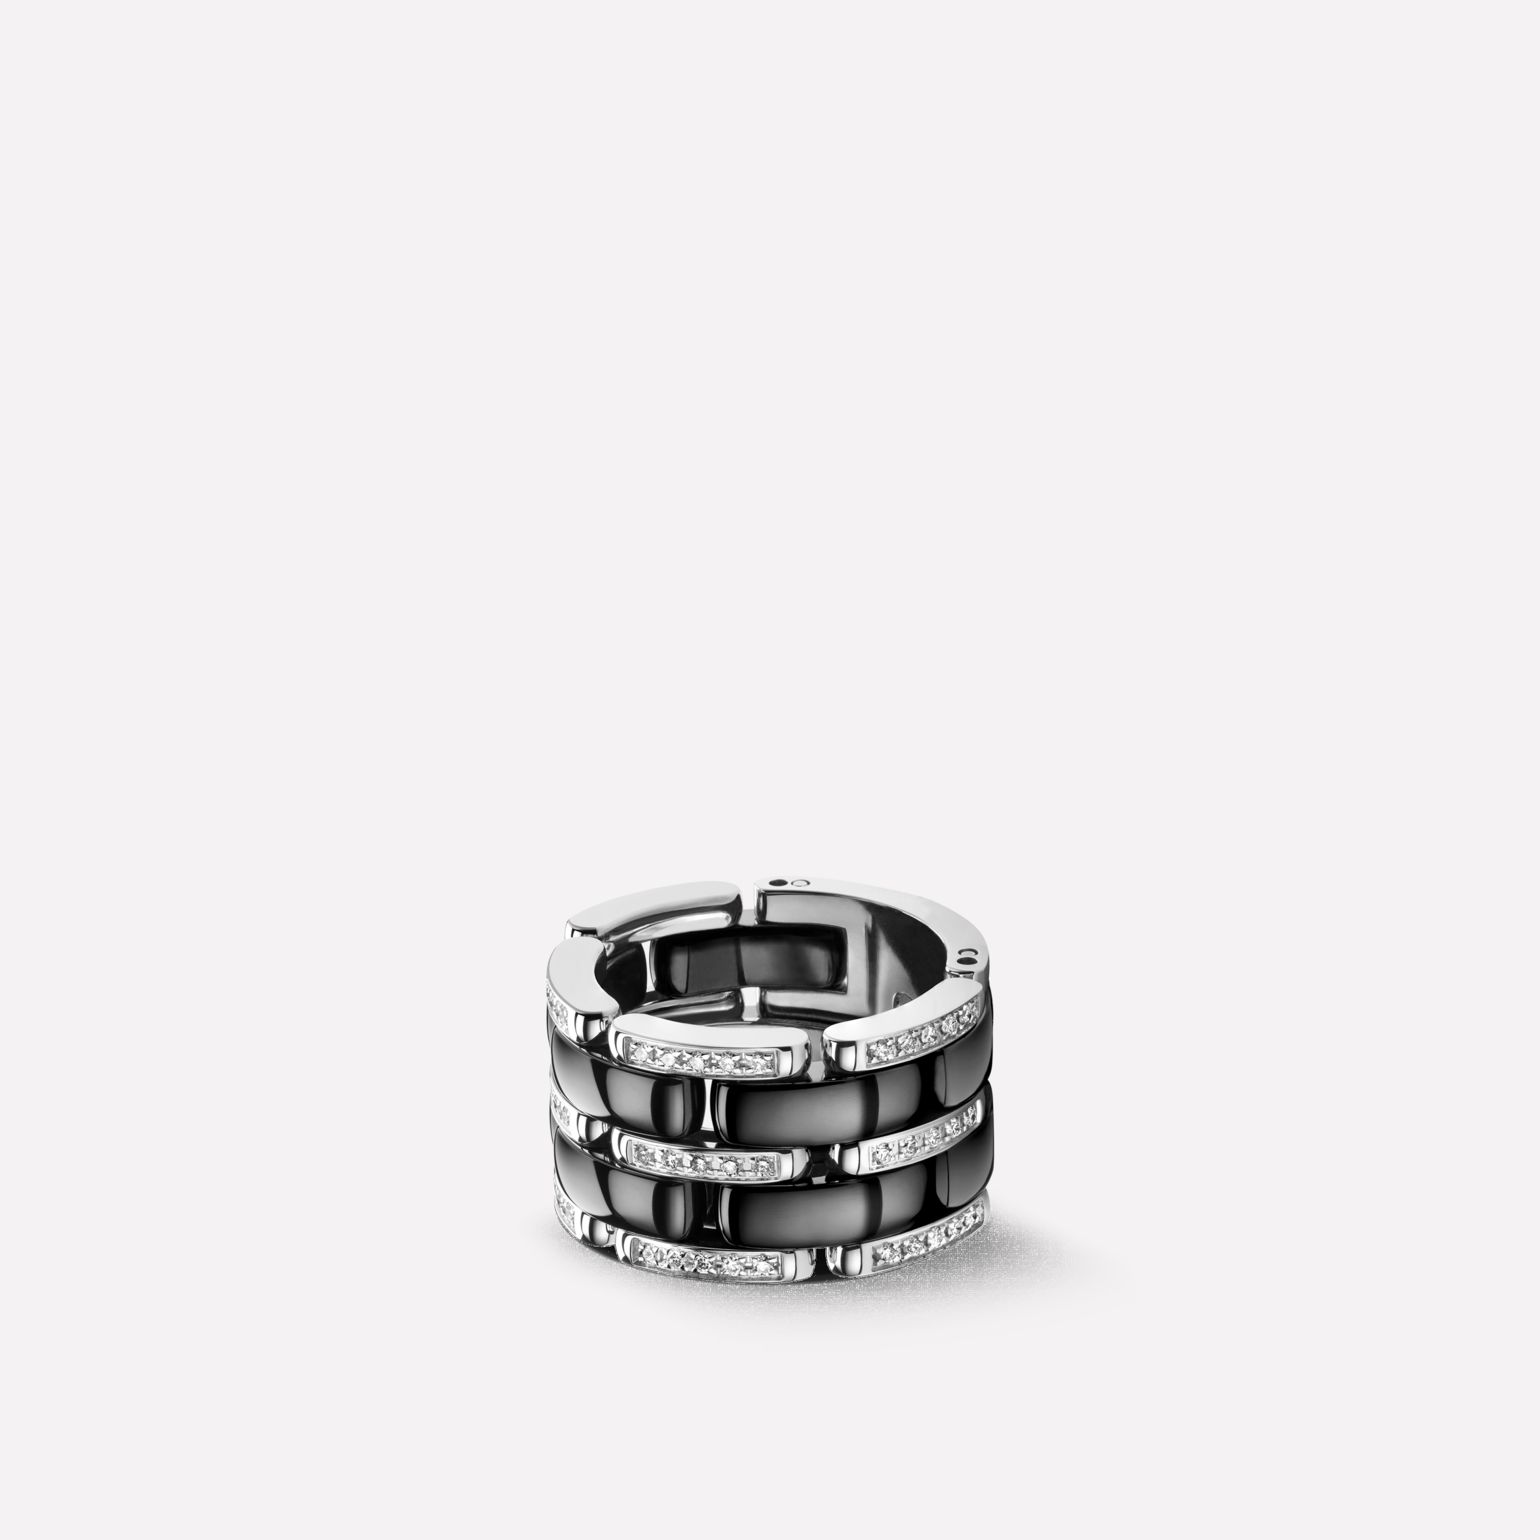 Ultra Ring Ultra ring in black ceramic, 18K white gold and diamonds. Large, flexible version.